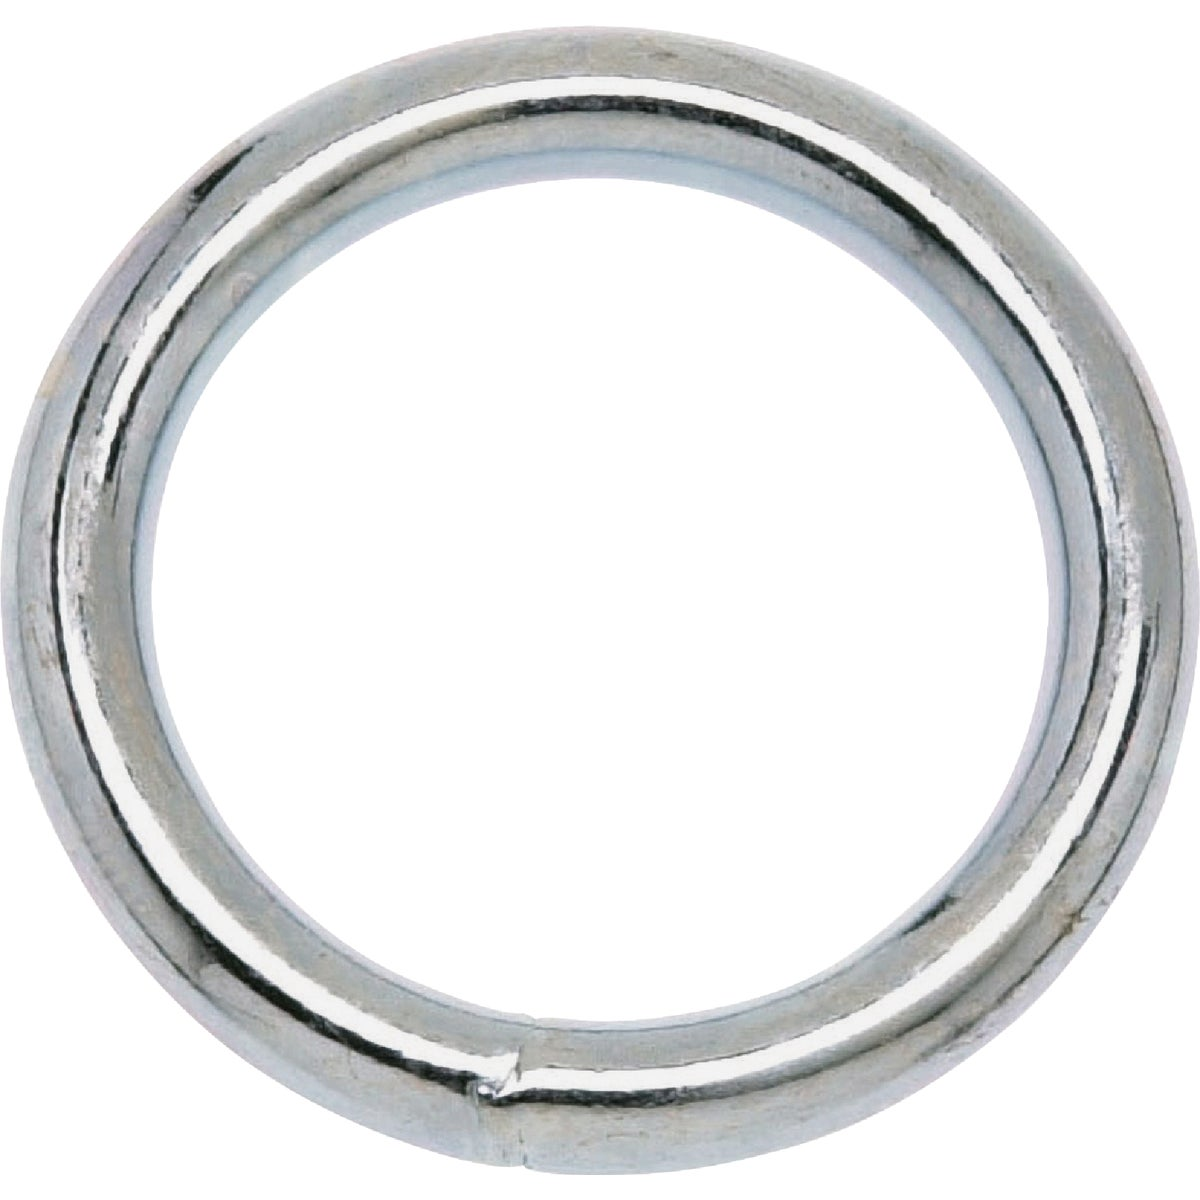 "2"" #2 ROUND RING - T7665001 by Cooper Campbell Apex"